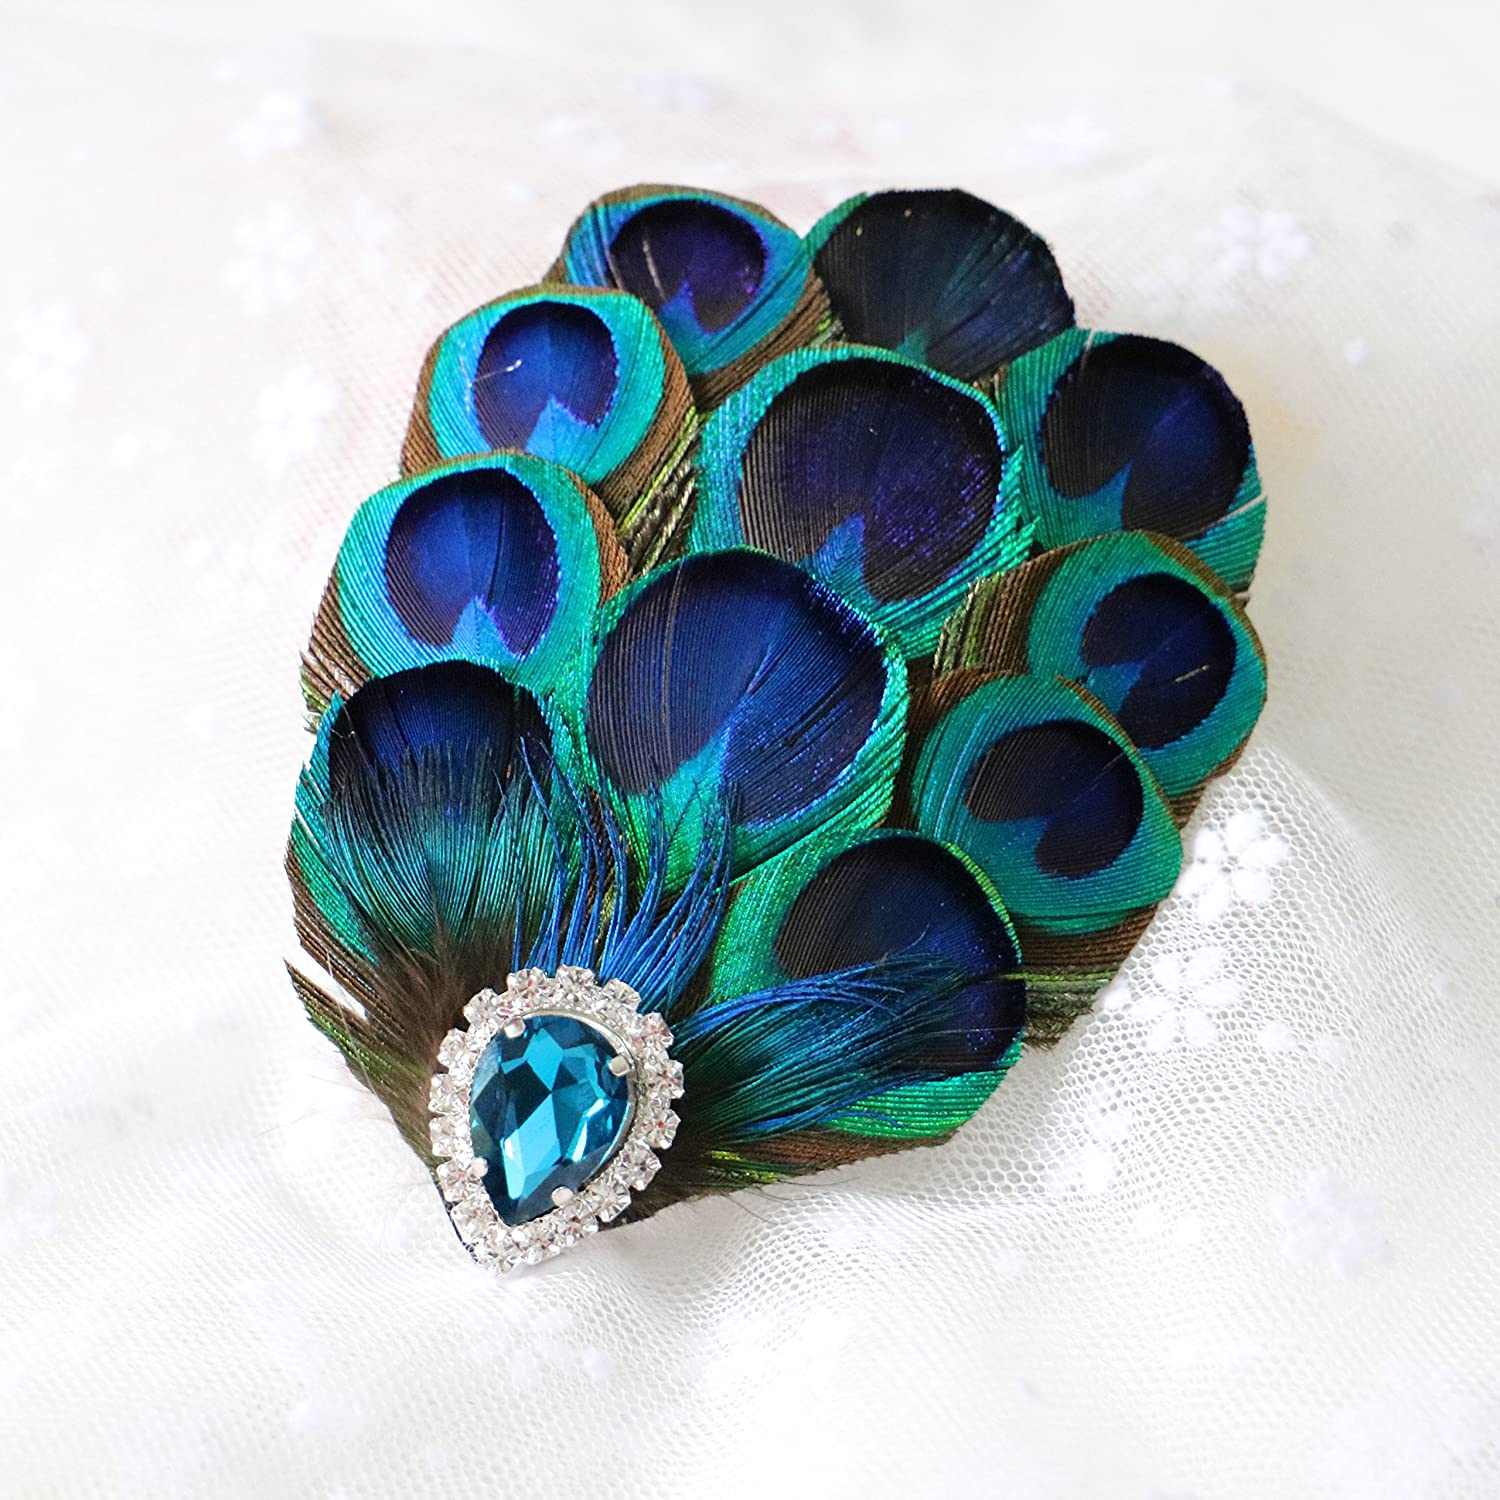 RUNHENG Handmade Feather Peacock Hairclip, Natural Feather Fascinator Barrette with Sparking Rhinestone and Blue Diamond.